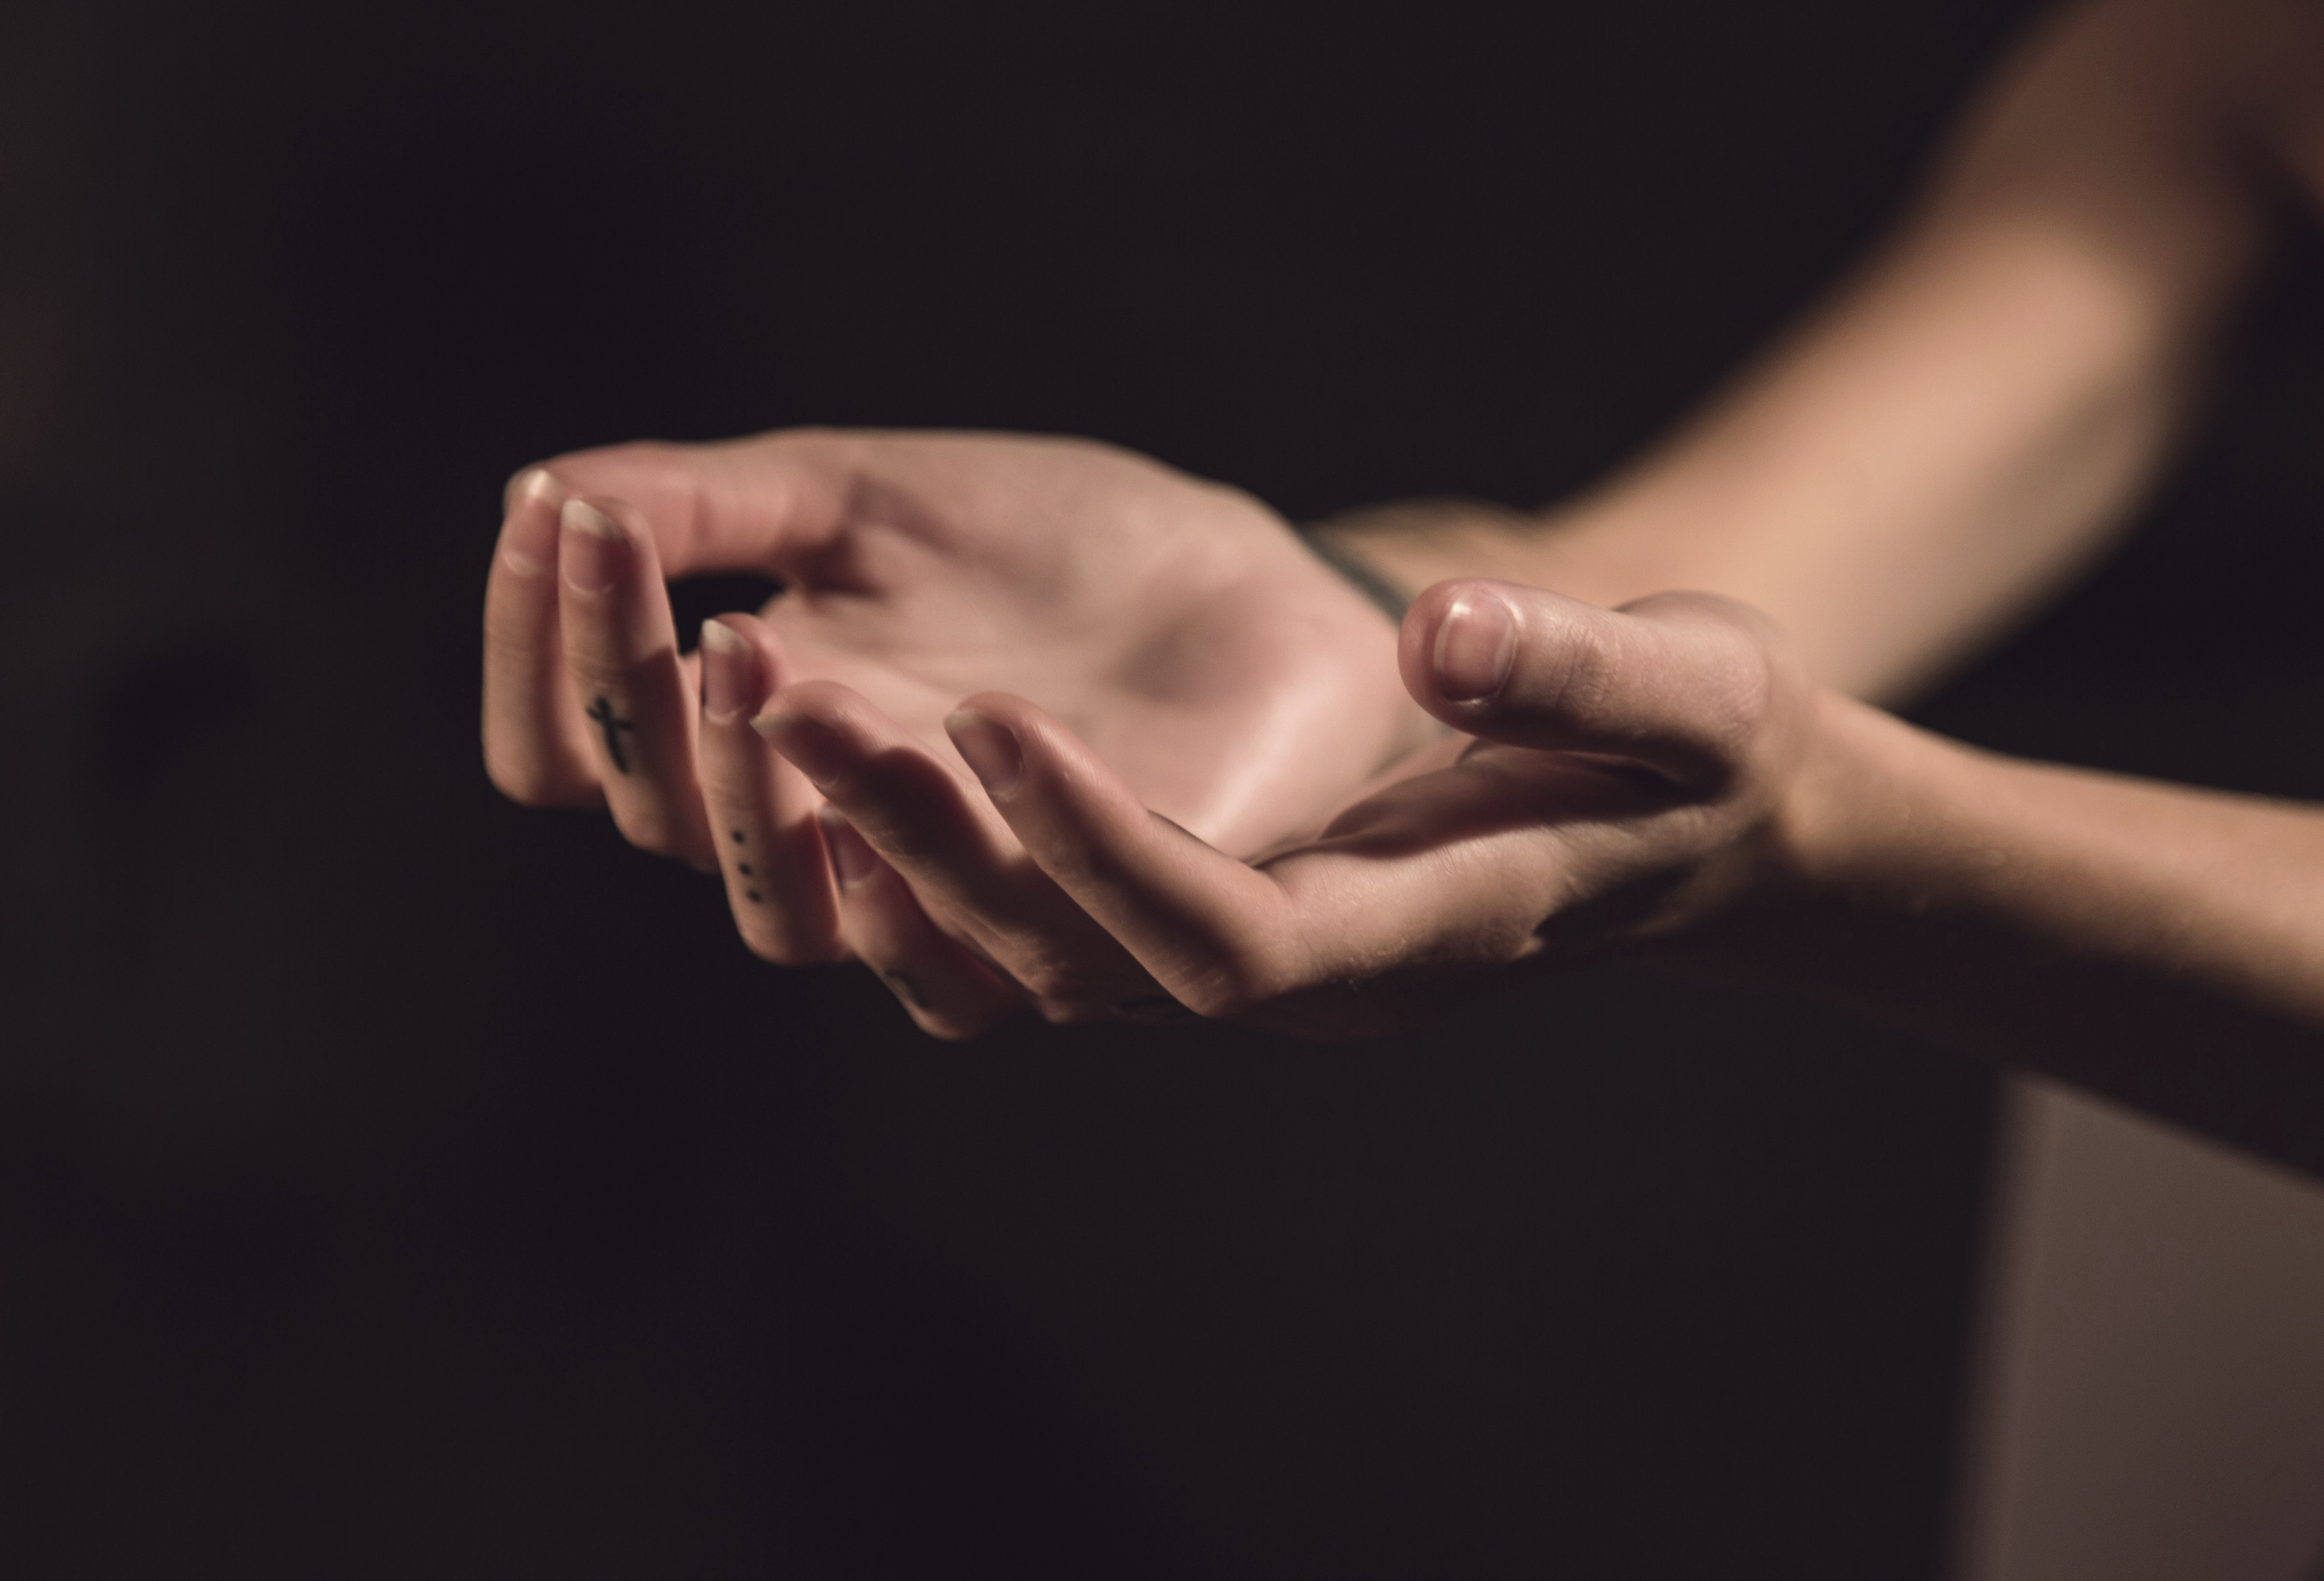 Two hands held out to receive something